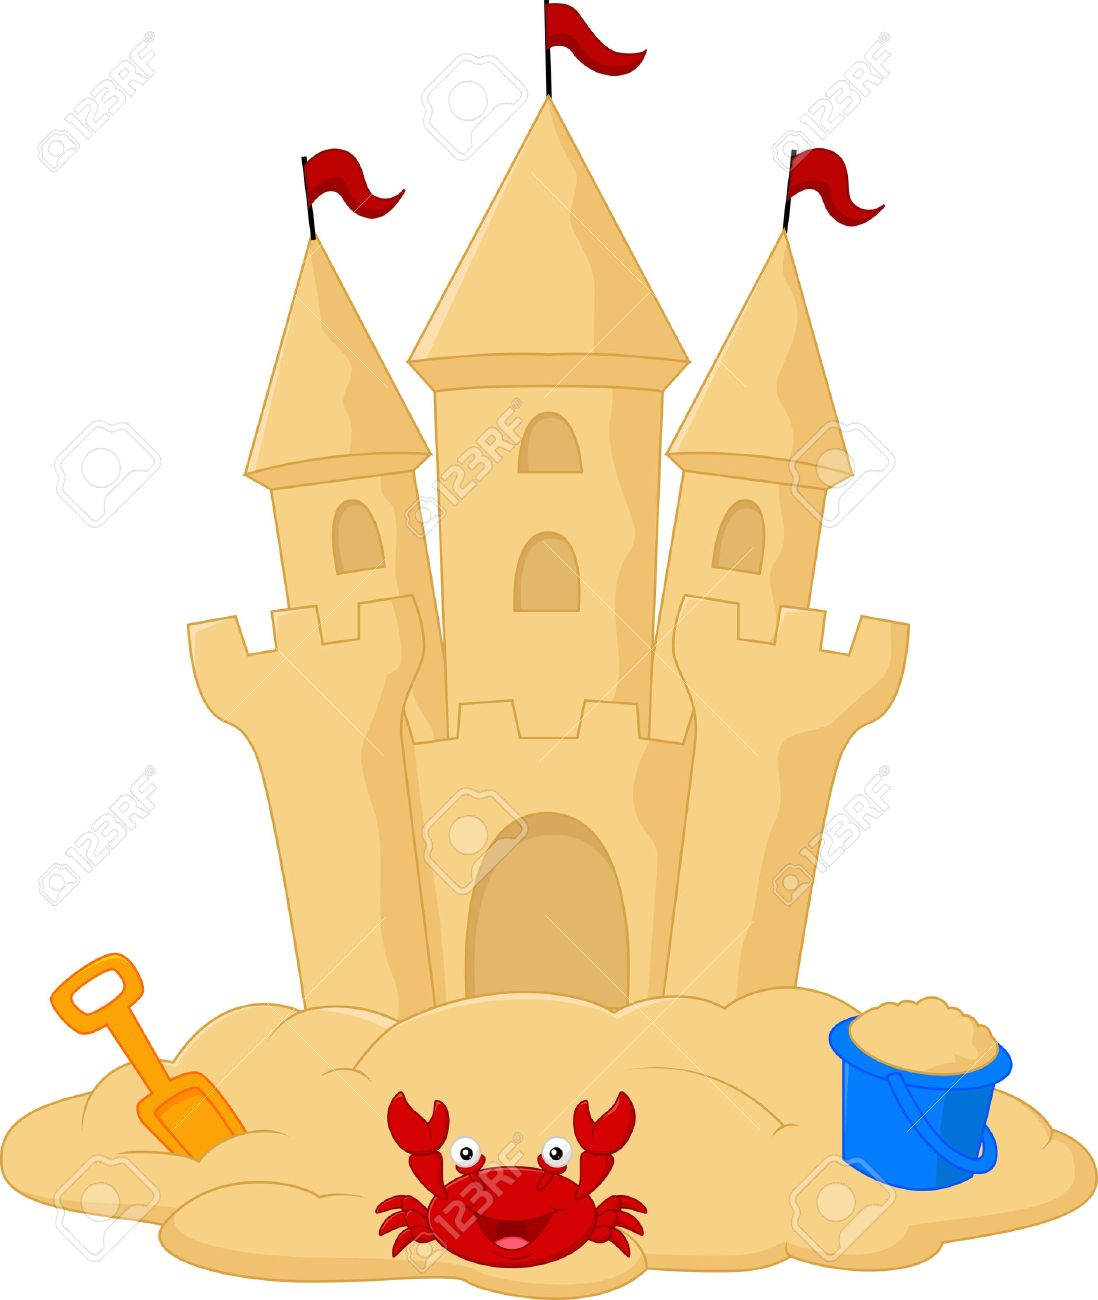 sand castle cartoon royalty free cliparts vectors and stock rh 123rf com sand castle clipart png sand castle clipart png